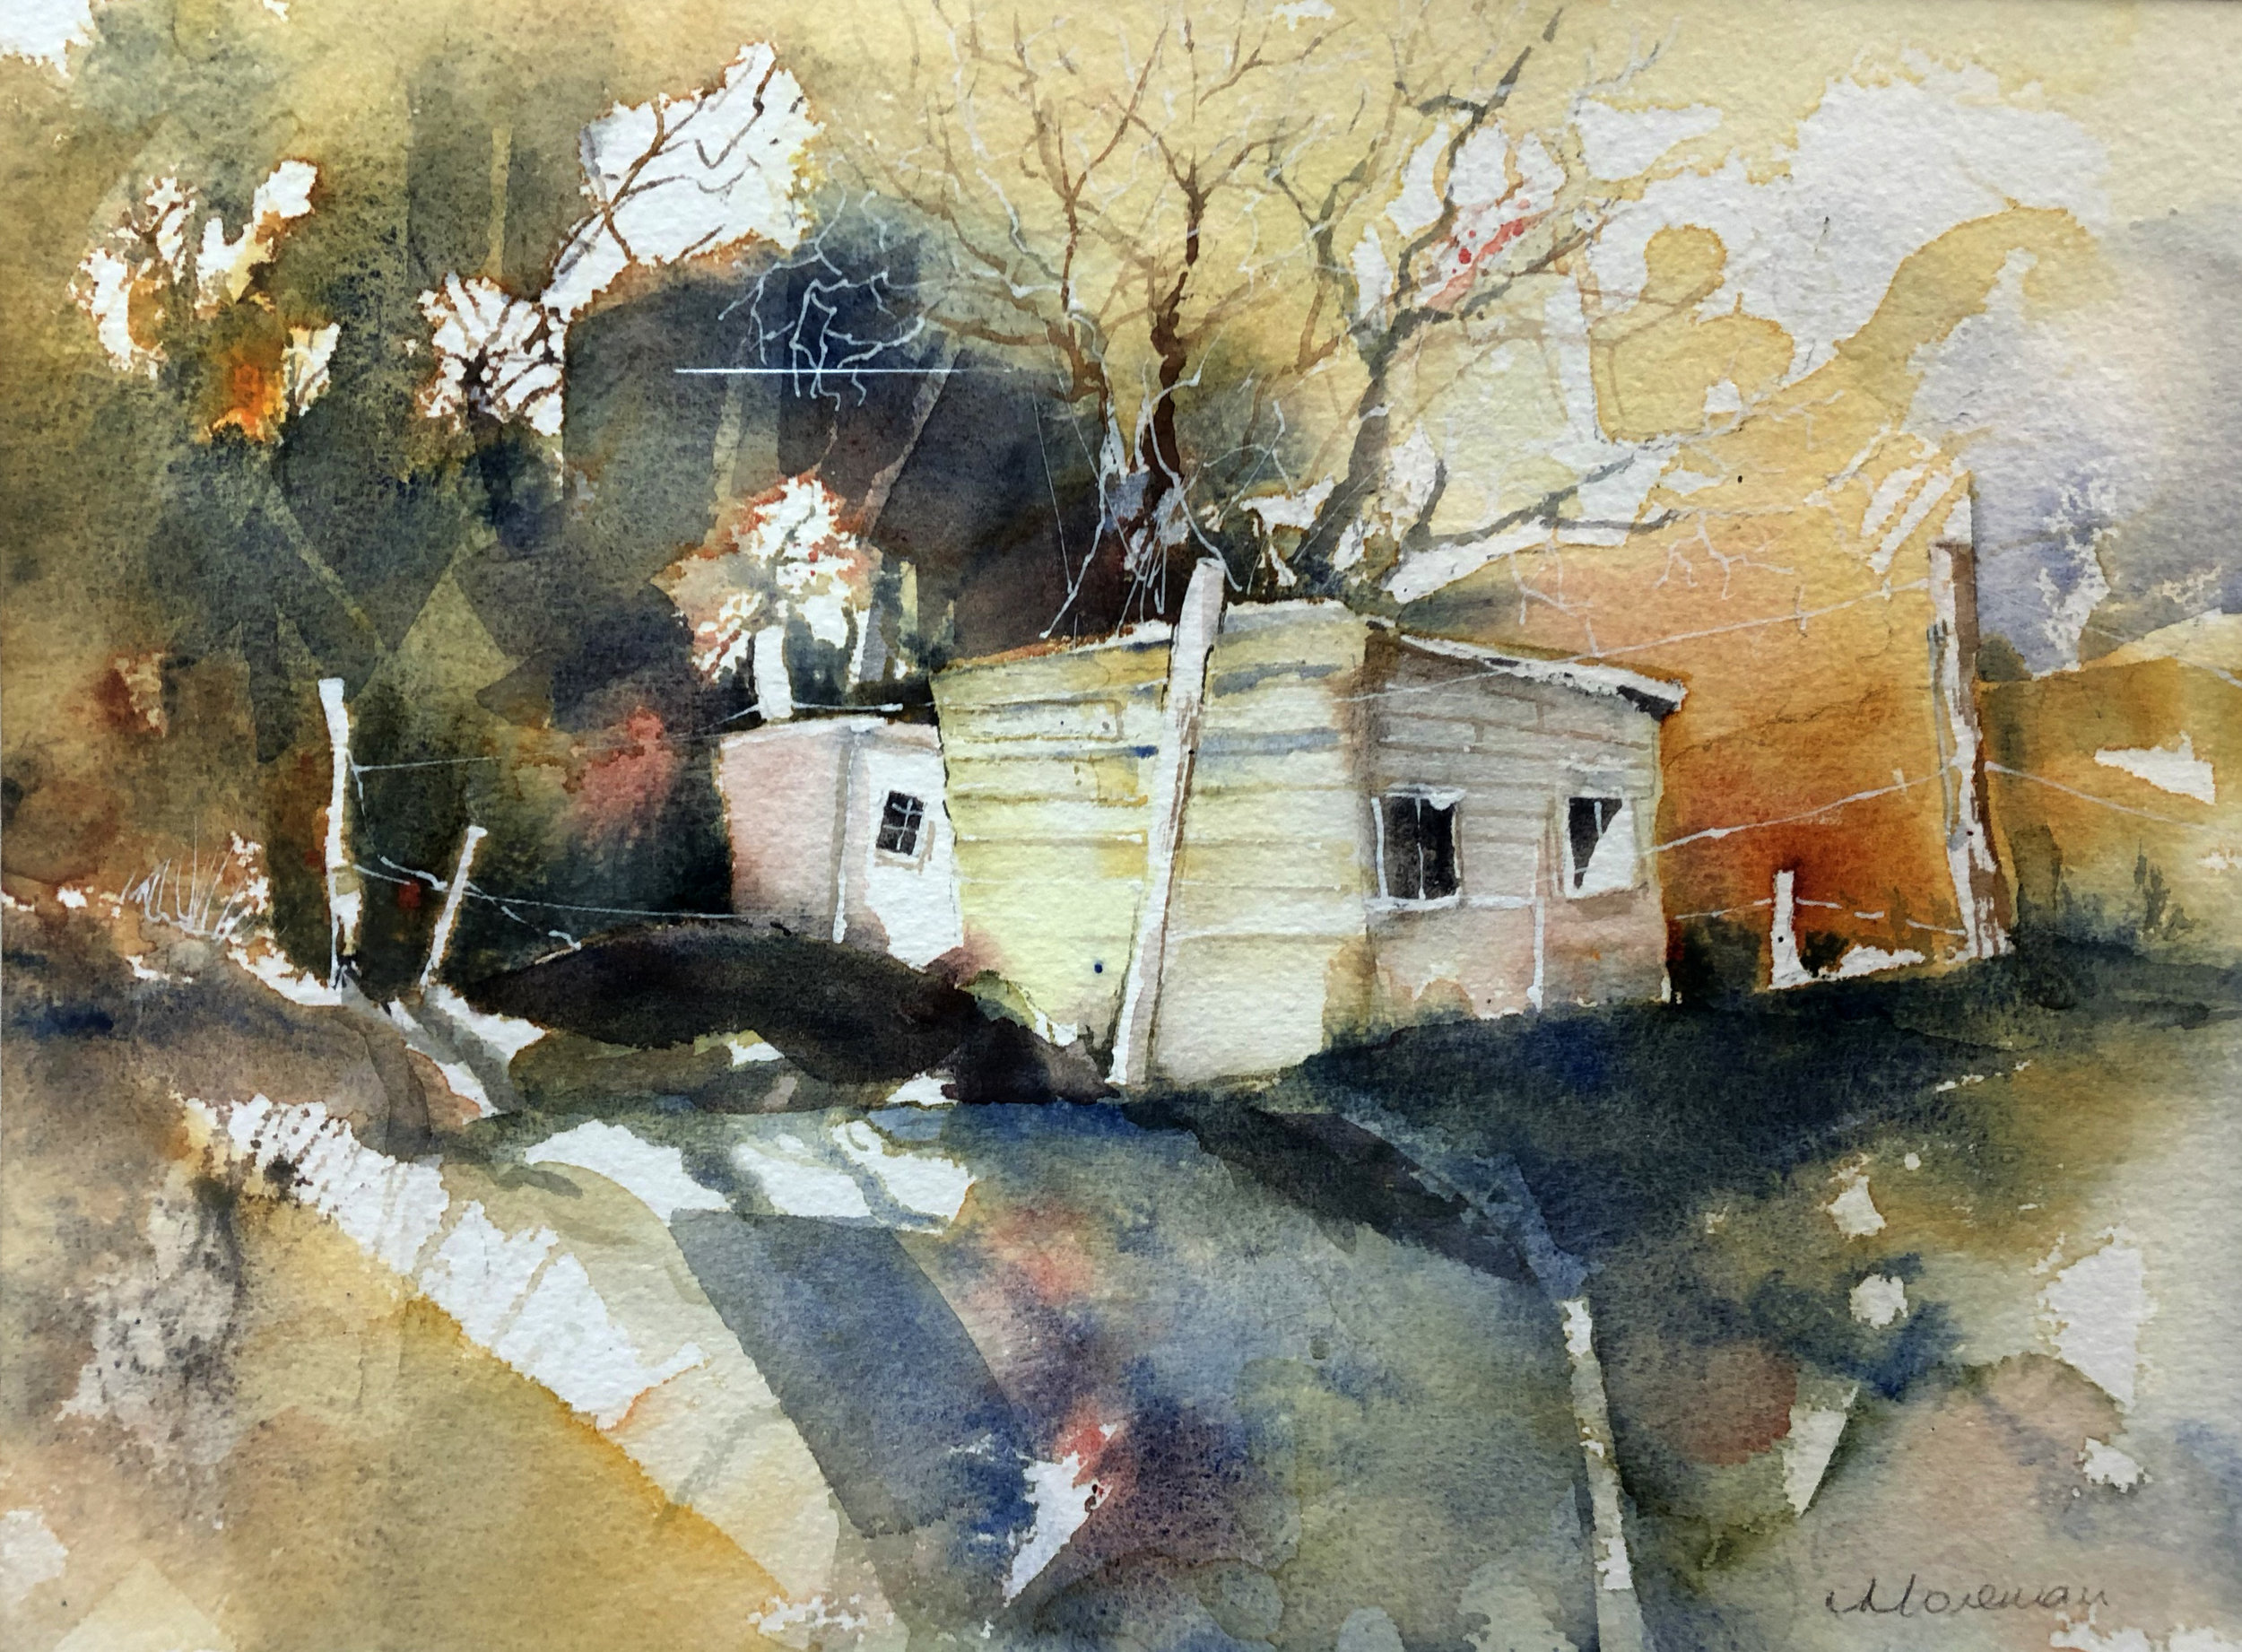 Val Morsman, The Yellow Shed, Watercolour on paper, 24cm x 31cm x 1.5cm,  http://www.valmorsman.com